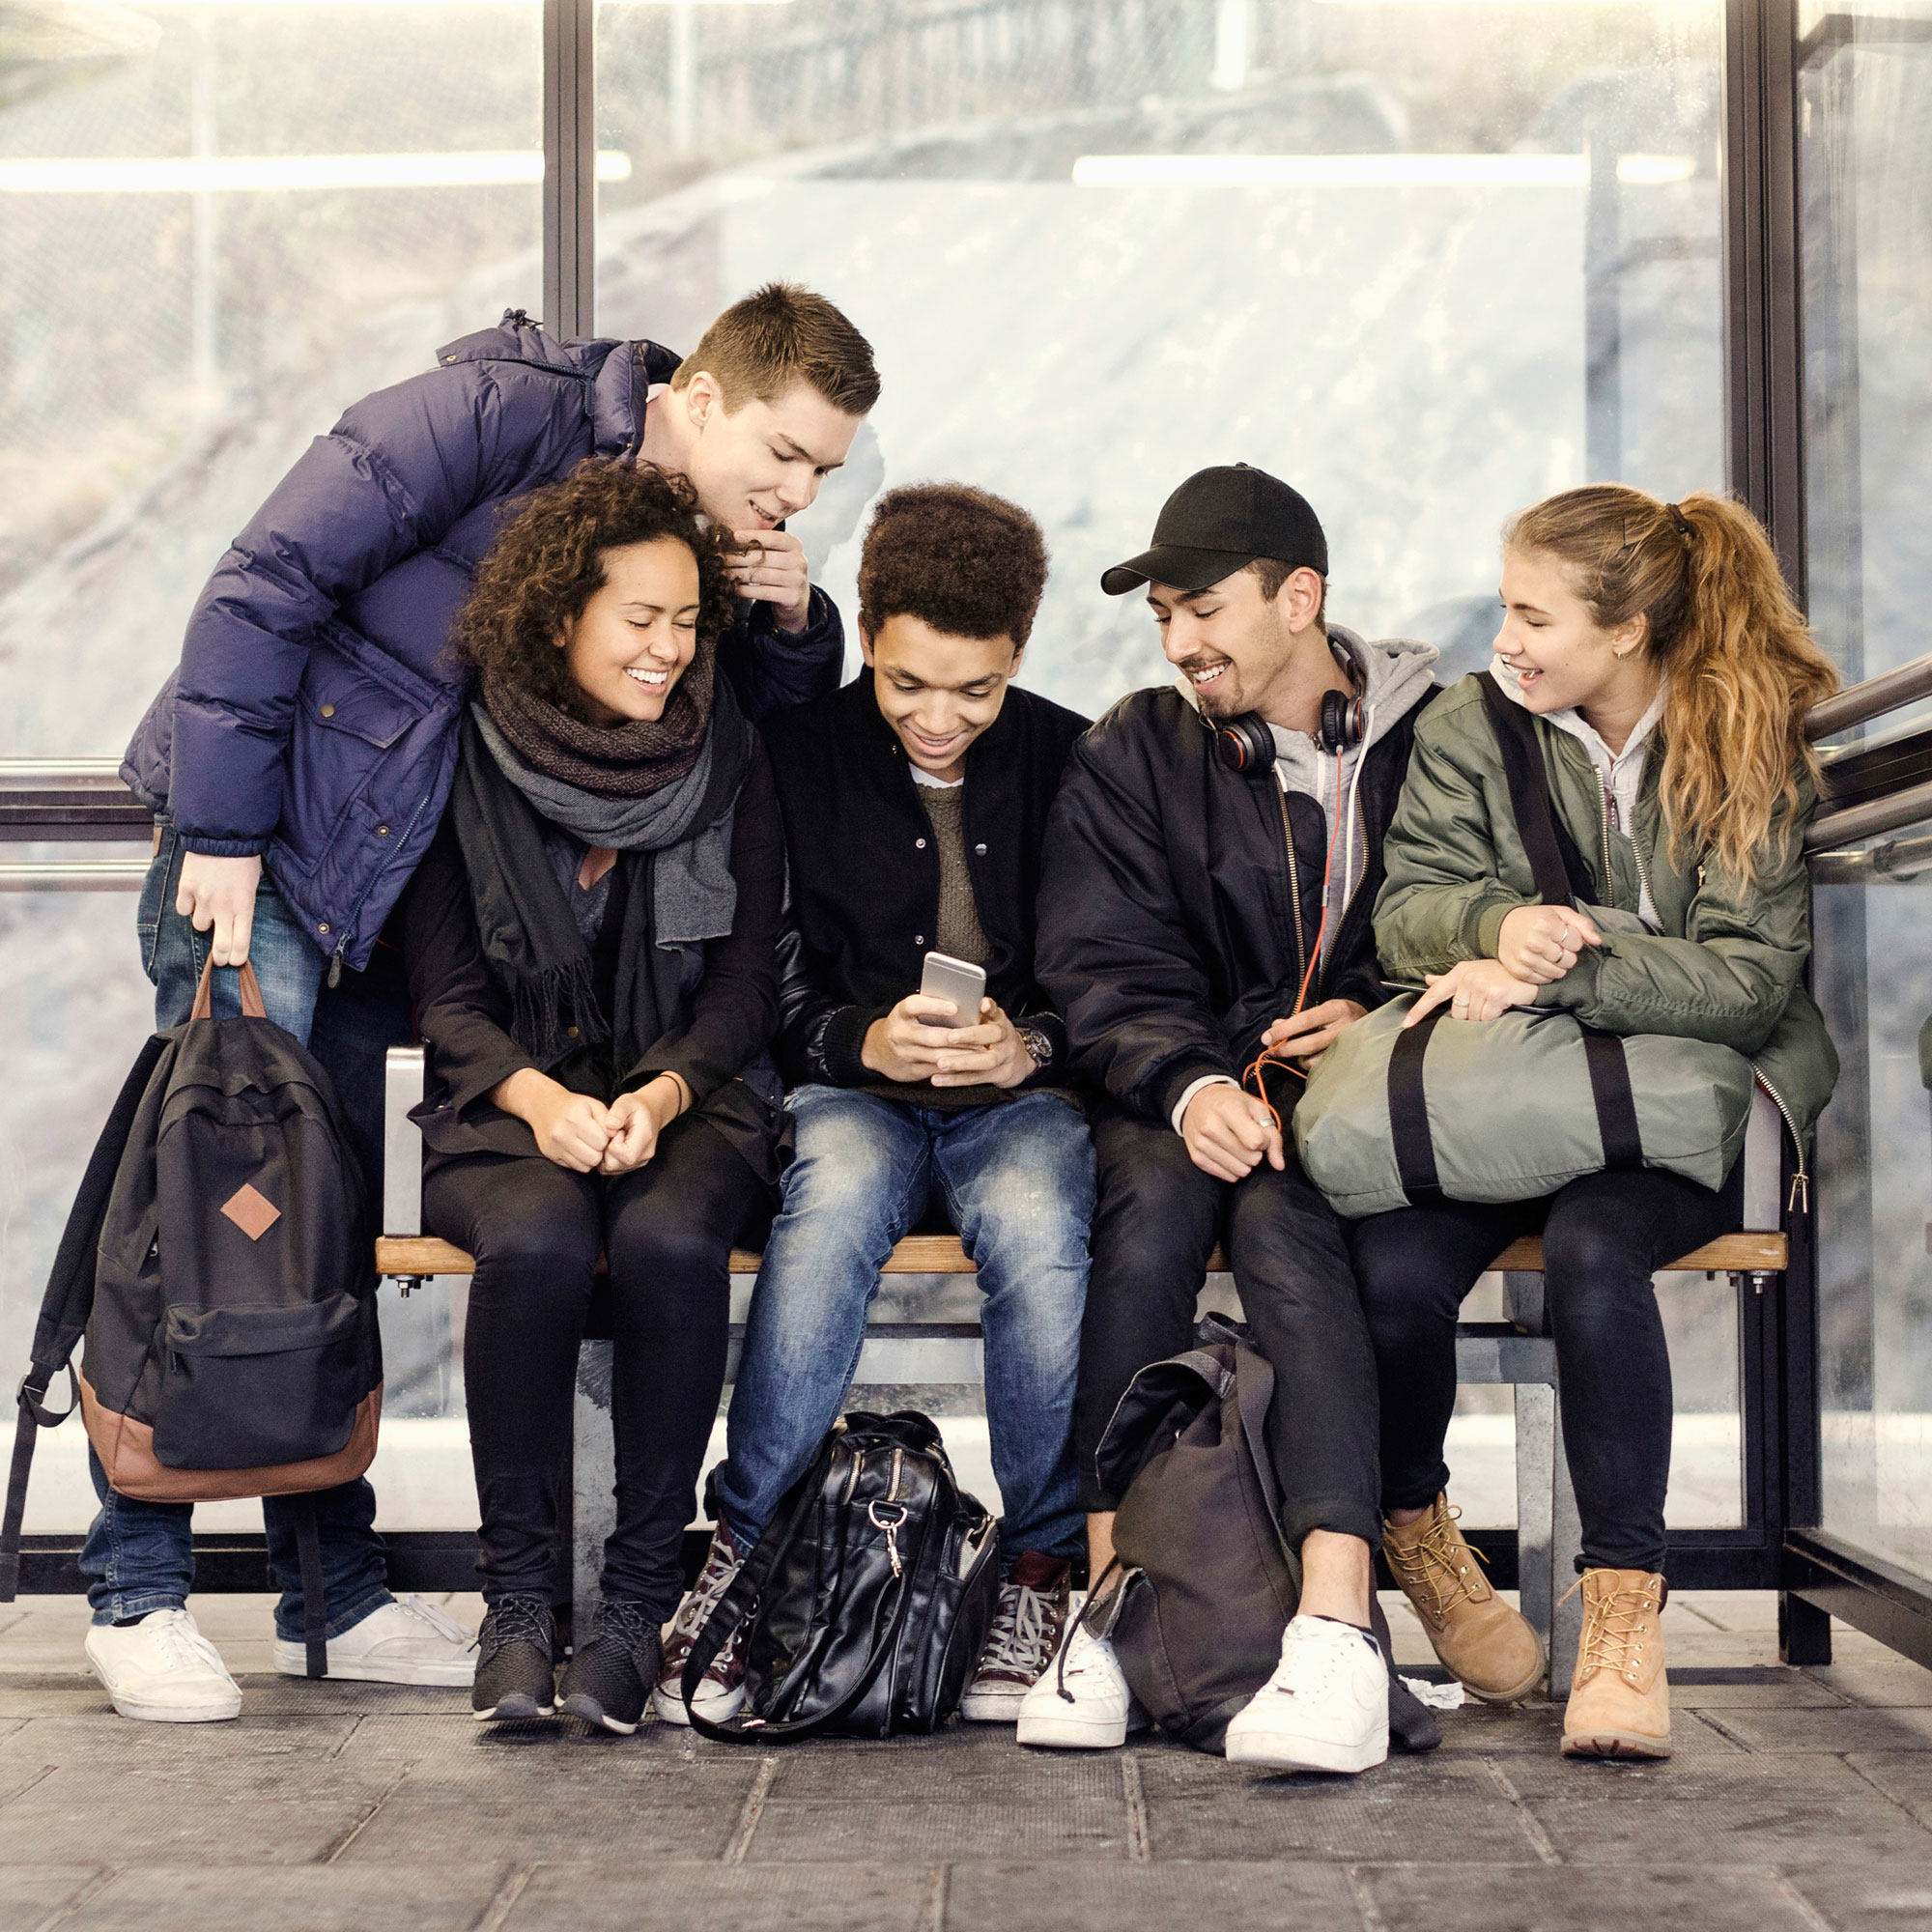 Youths waiting at bus stop in wintertime.